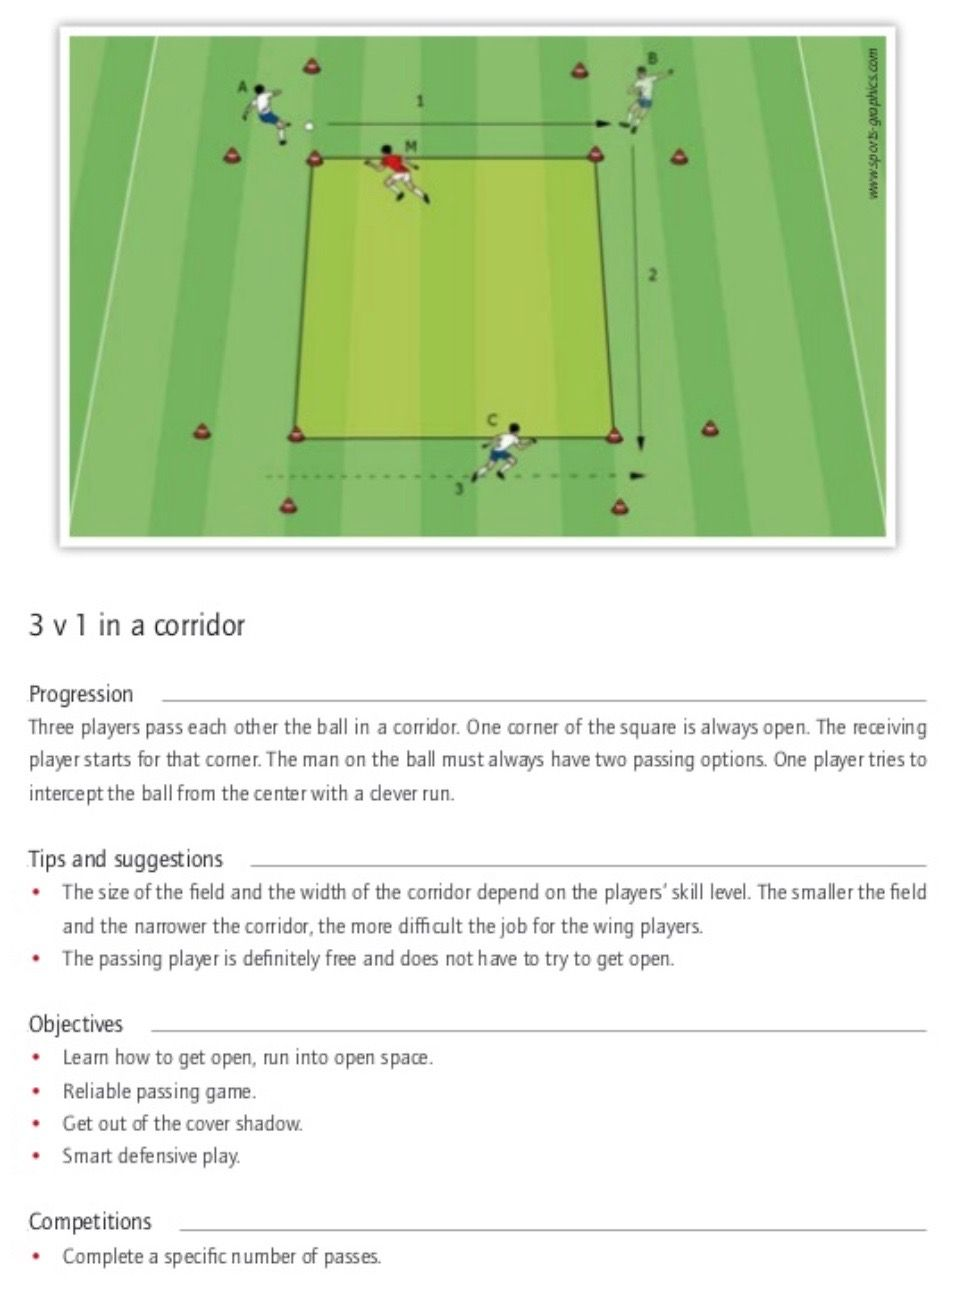 Pin Van Robert Boland Op Youth Soccer Training Voetbal Training Voetbal Training